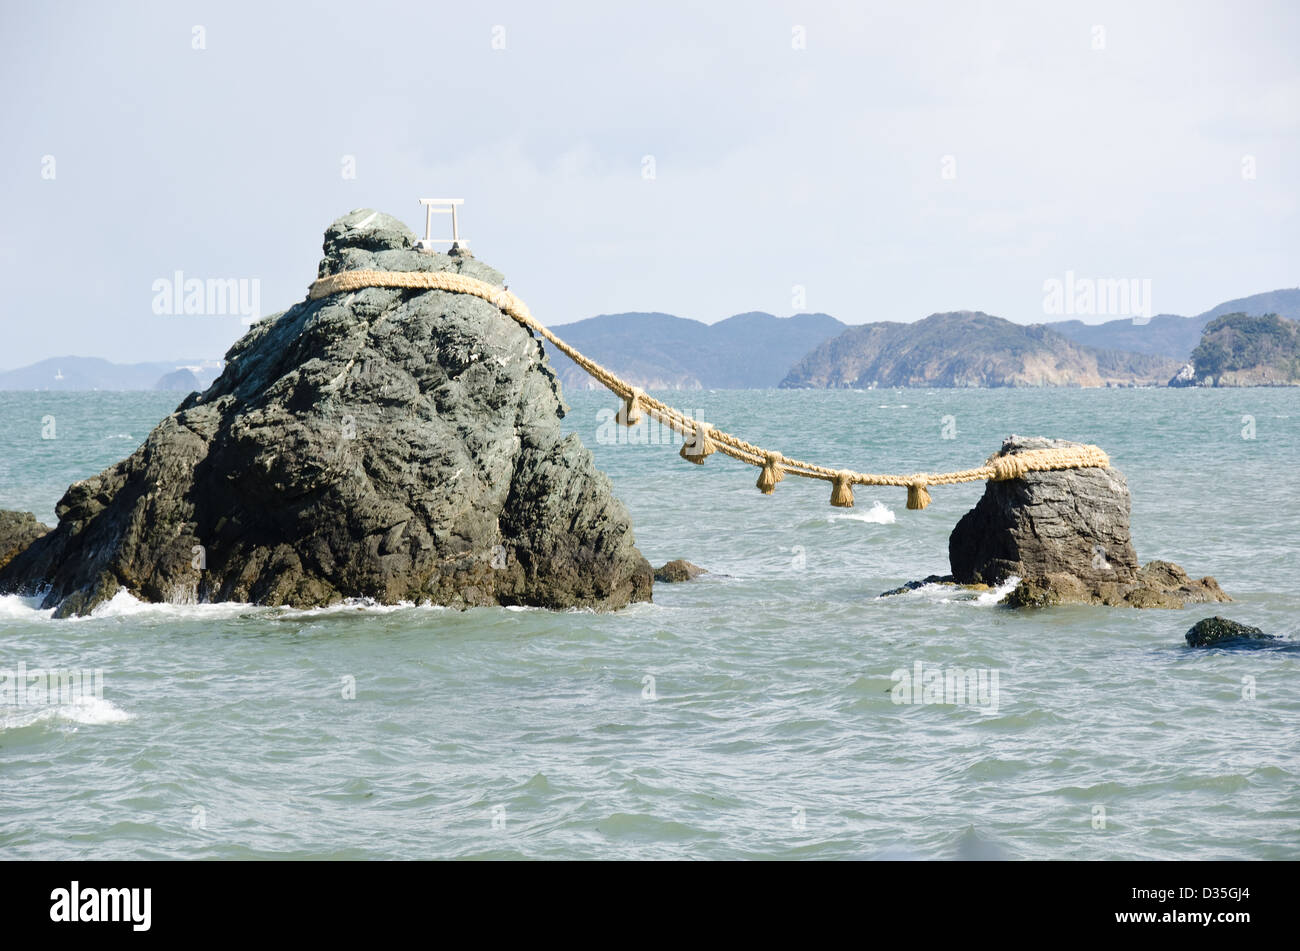 Meoto Iwa or the Loved one and loved one Rocks at Mie, Japan - Stock Image